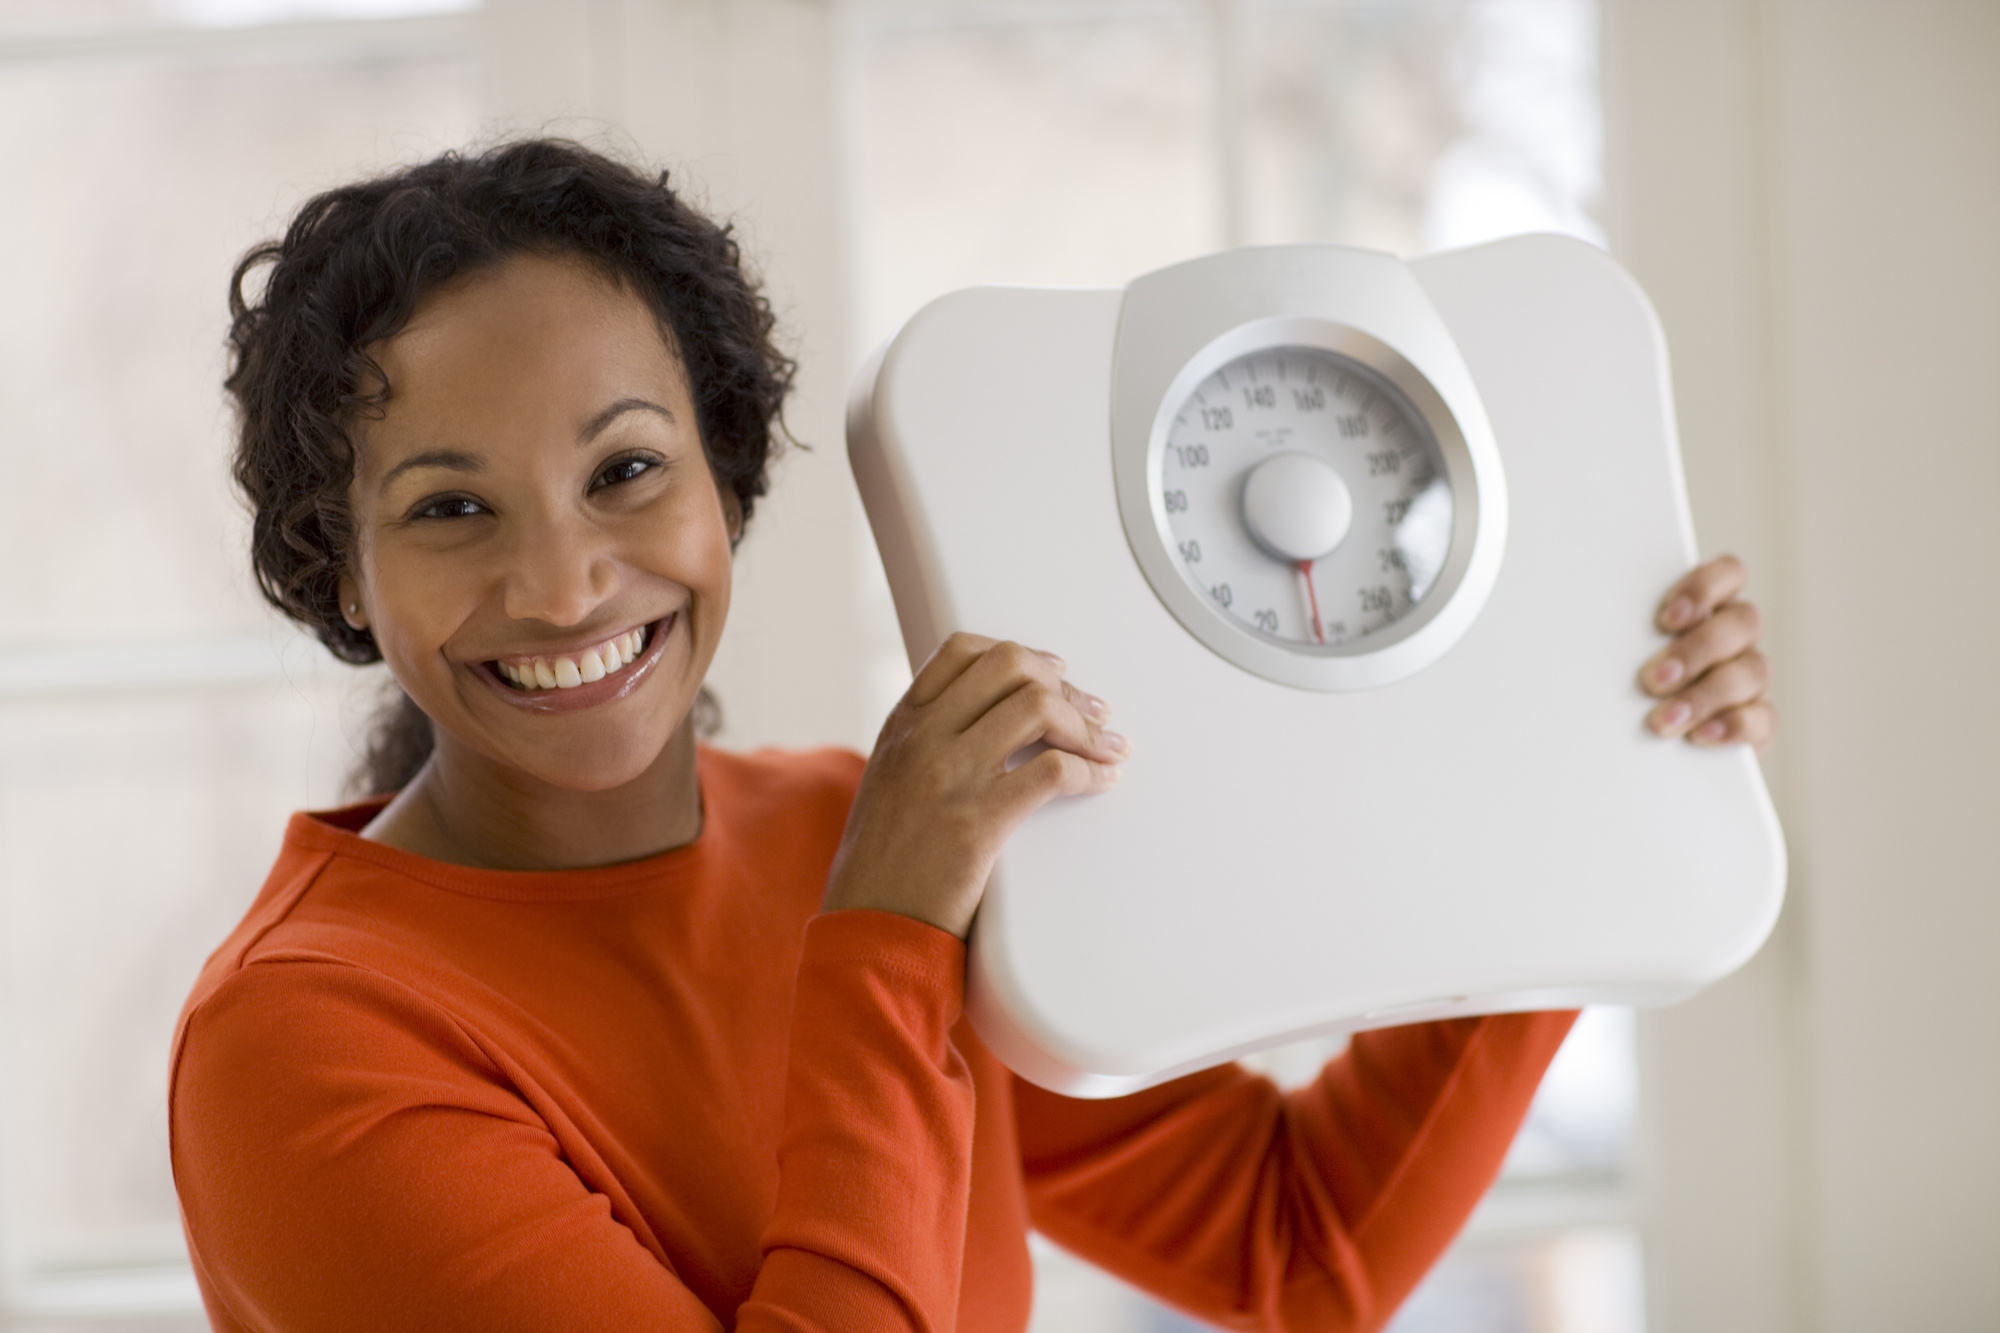 how to lose weight safely